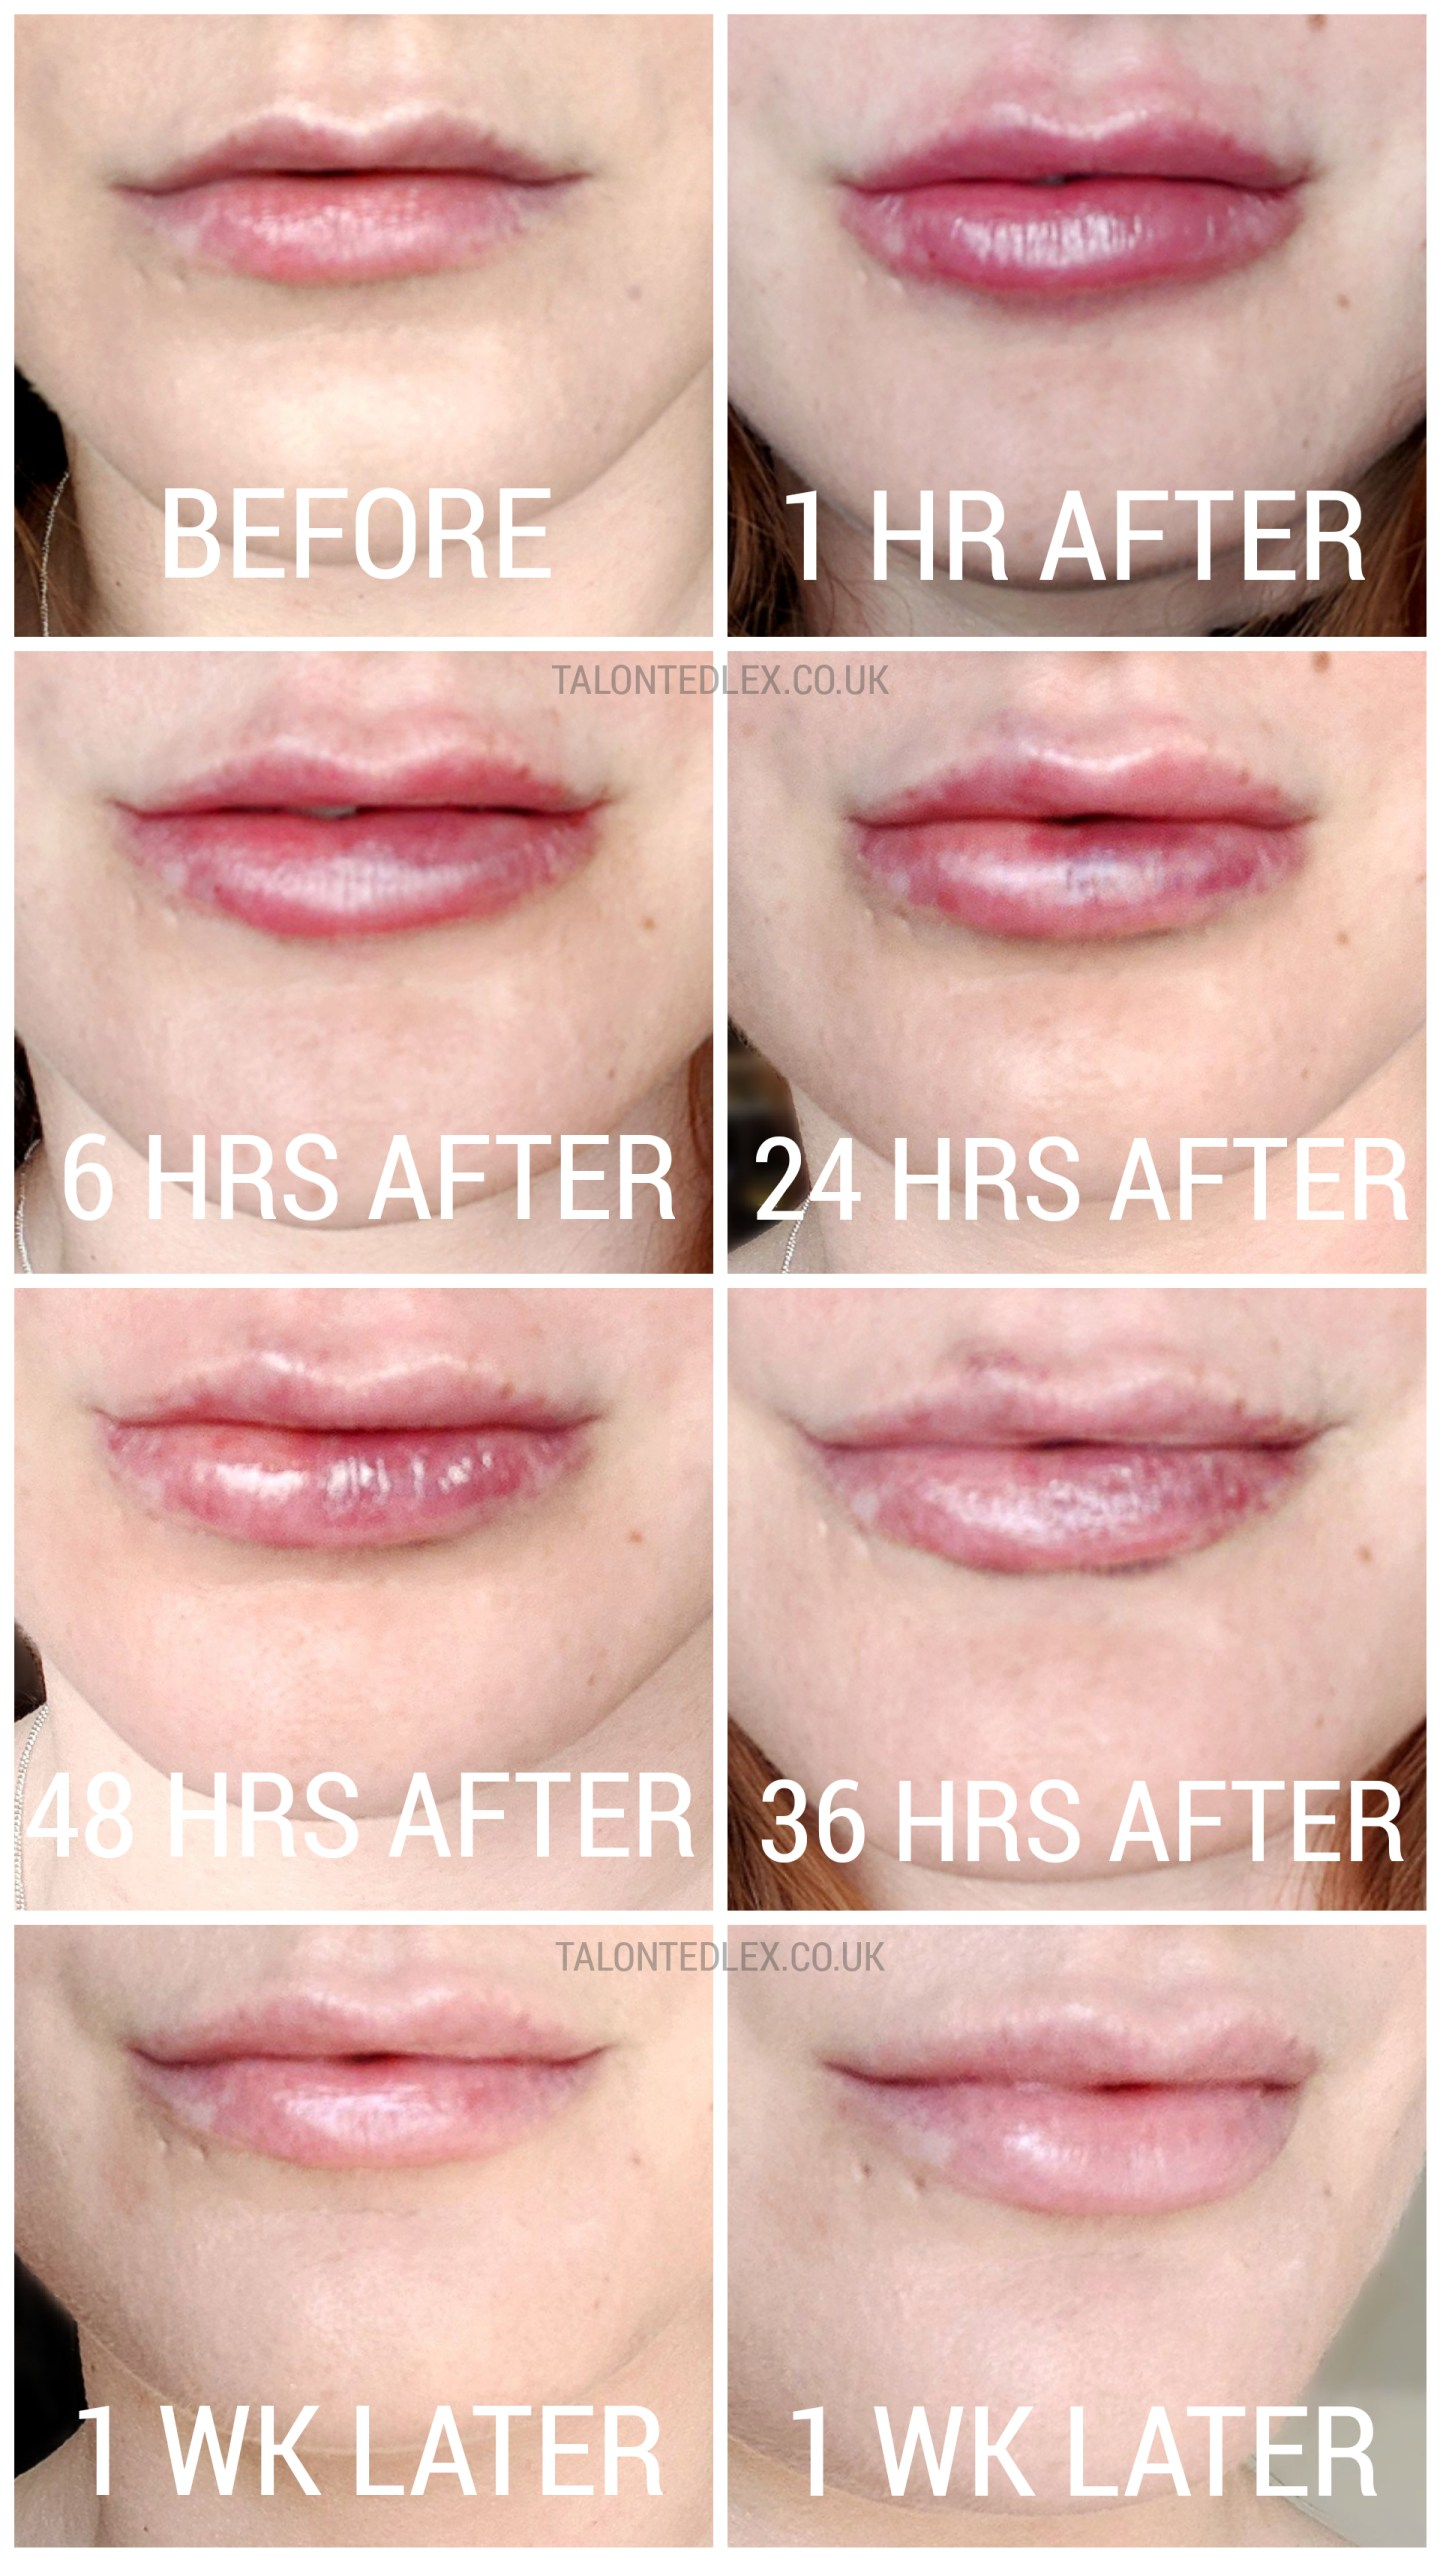 My Lip Fillers Experience with Dr Pamela Benito // Talonted Lex